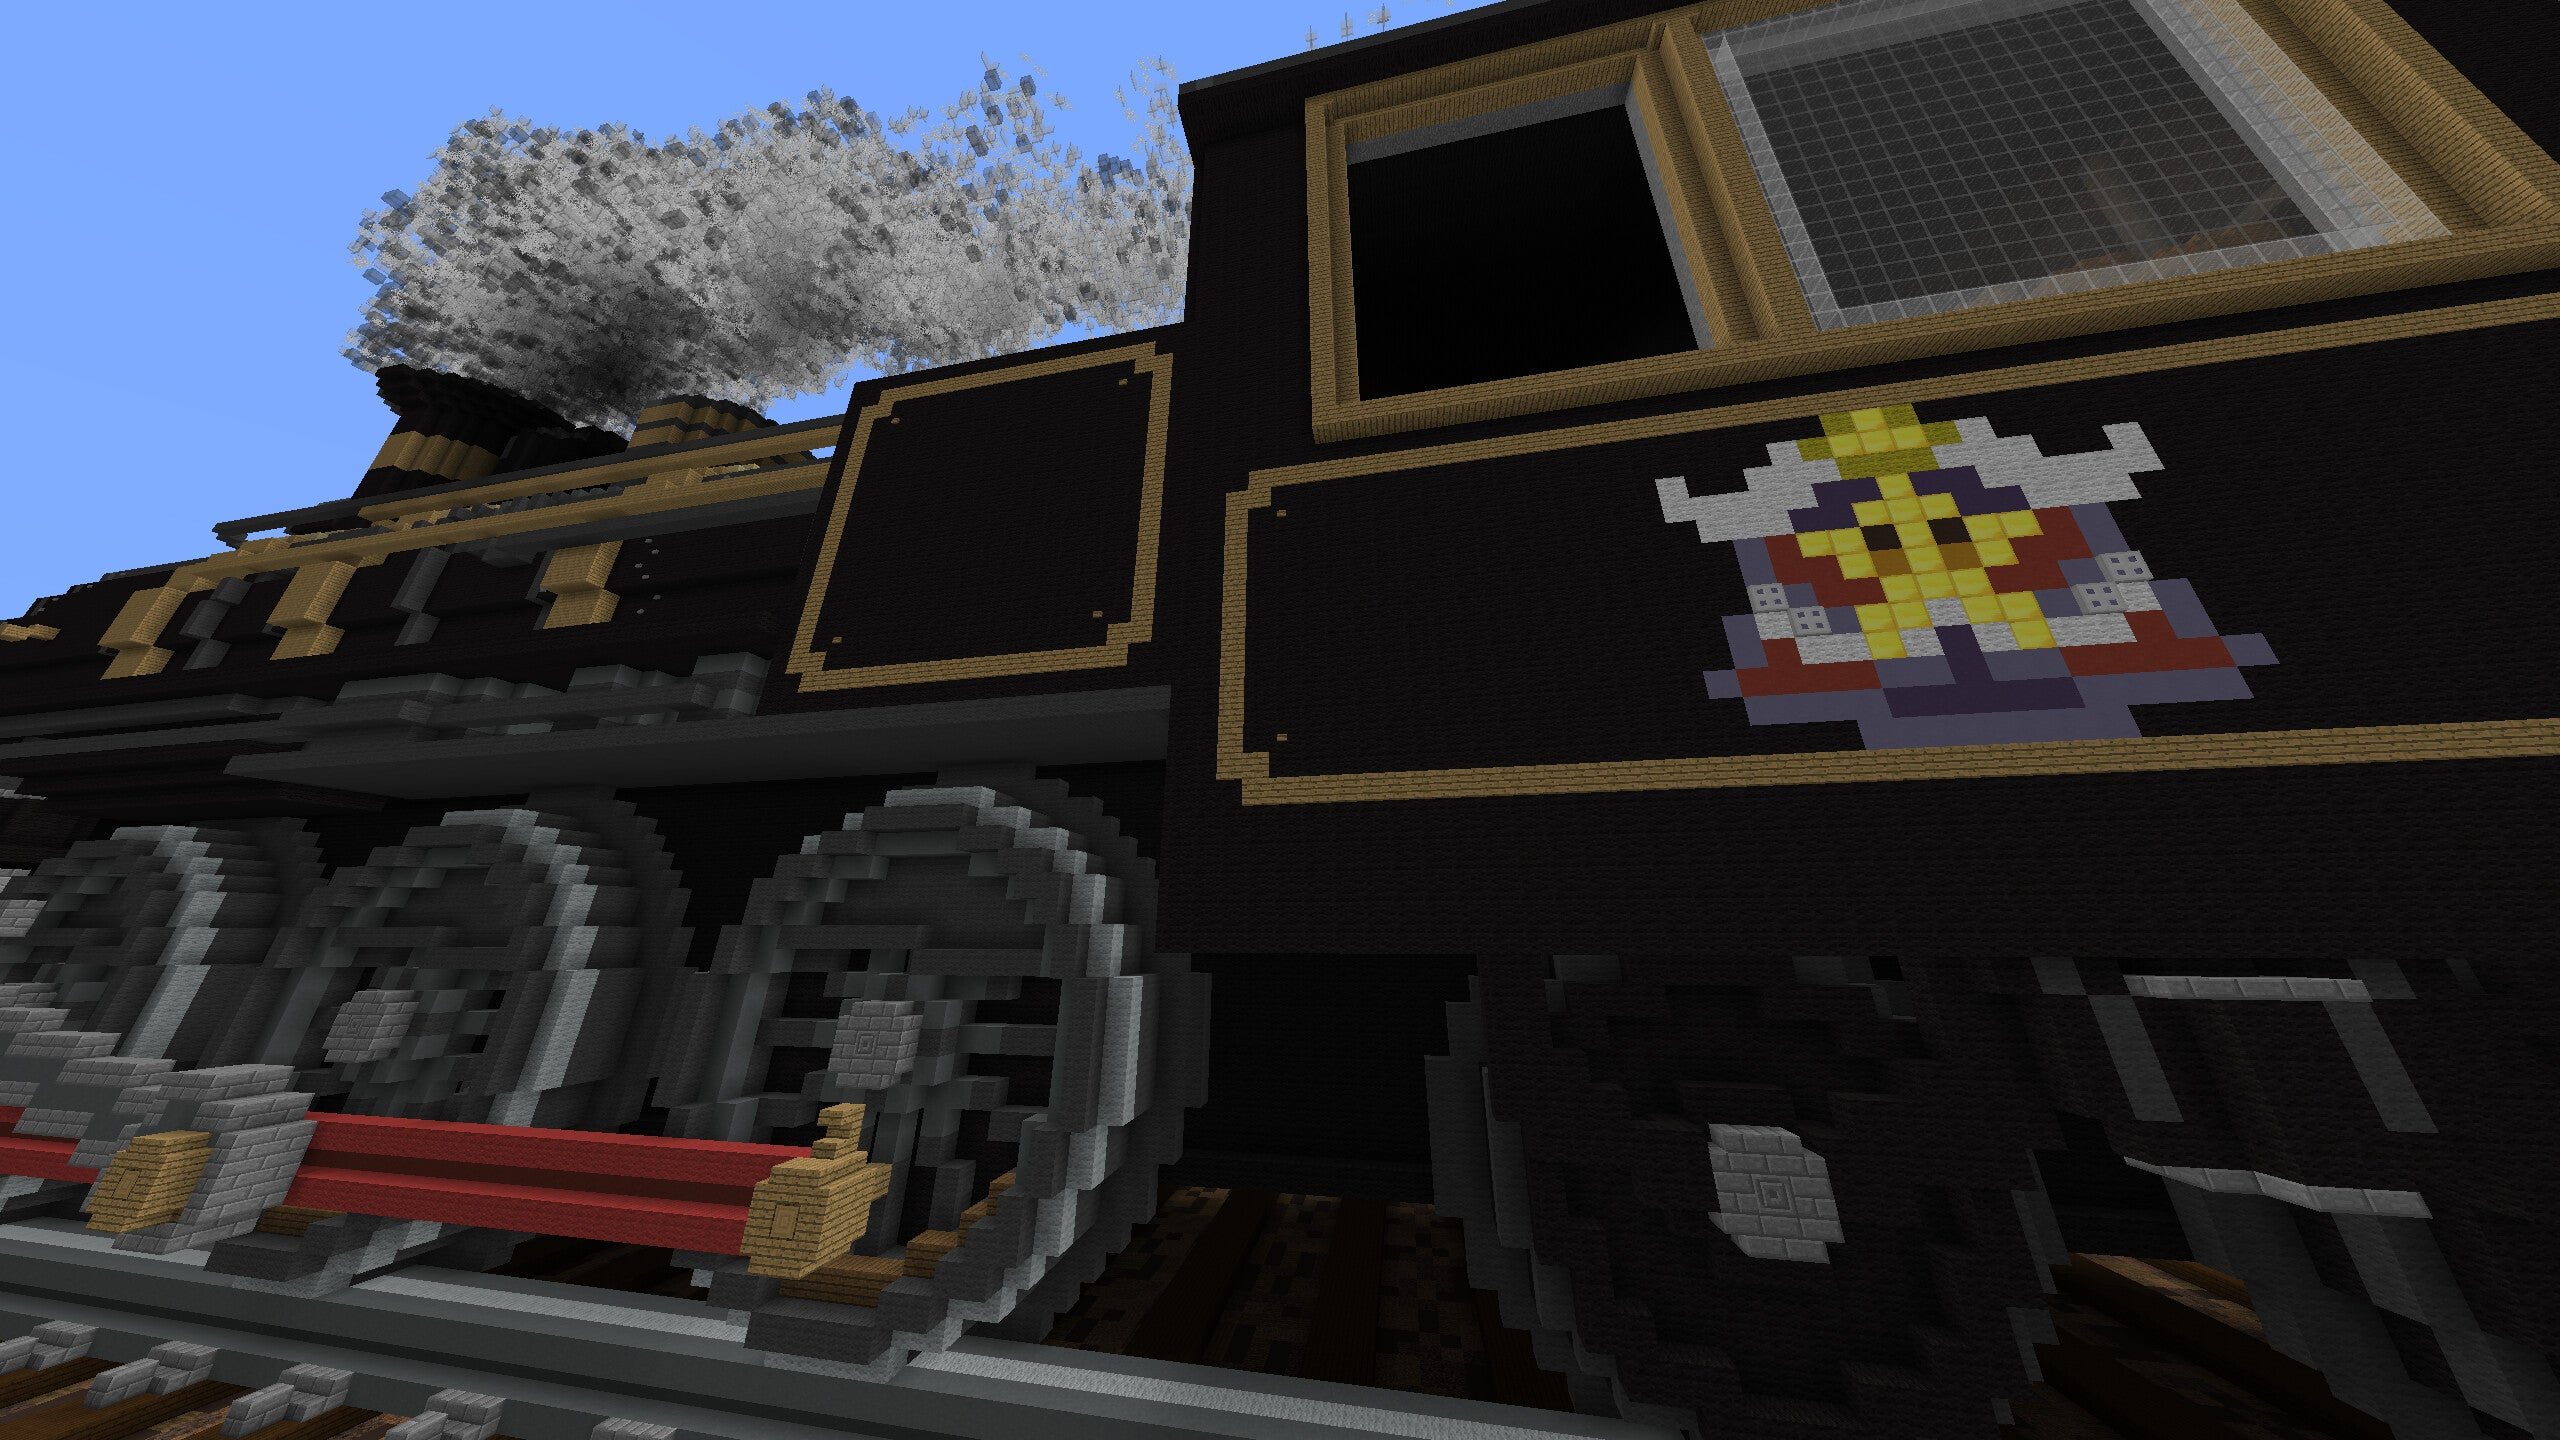 Exploring the Train From Mario Party 8 in Minecraft is Pretty Fun